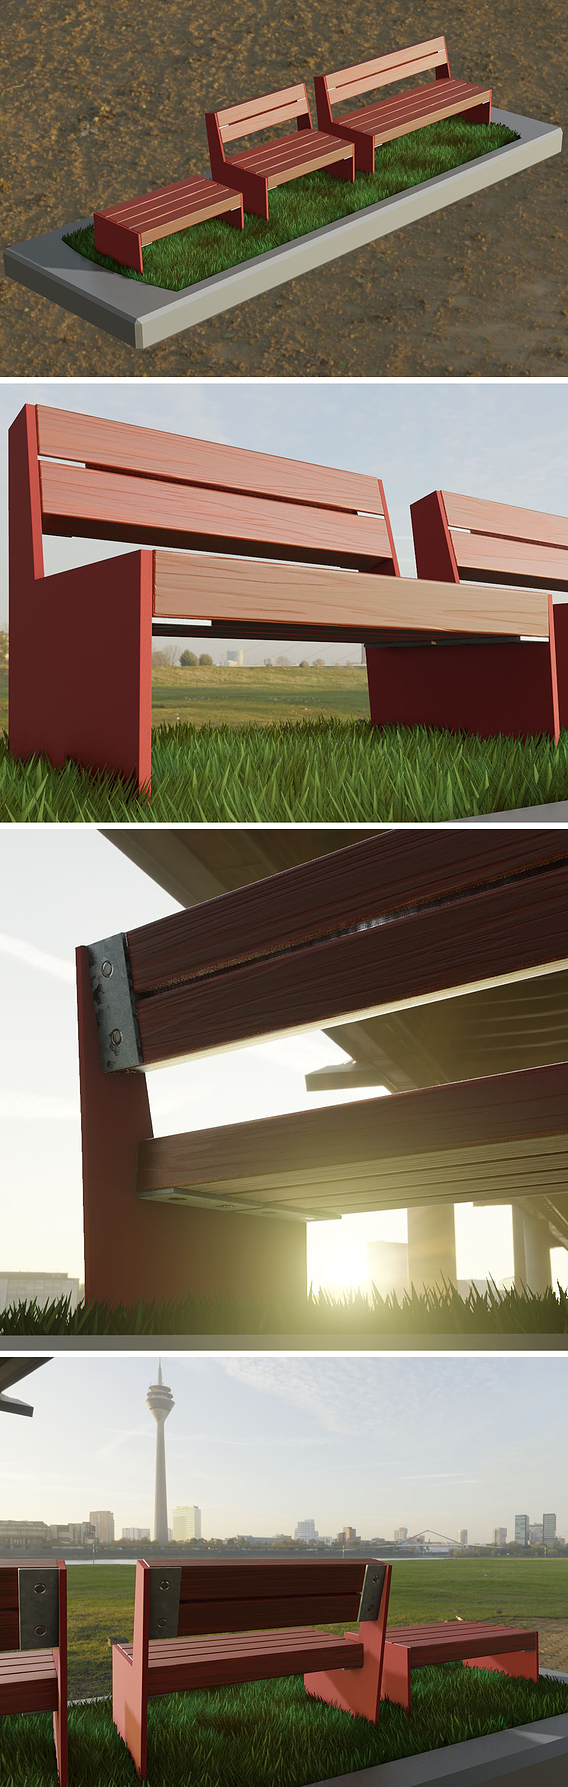 Park Bench [8] Red |Low Poly Version|